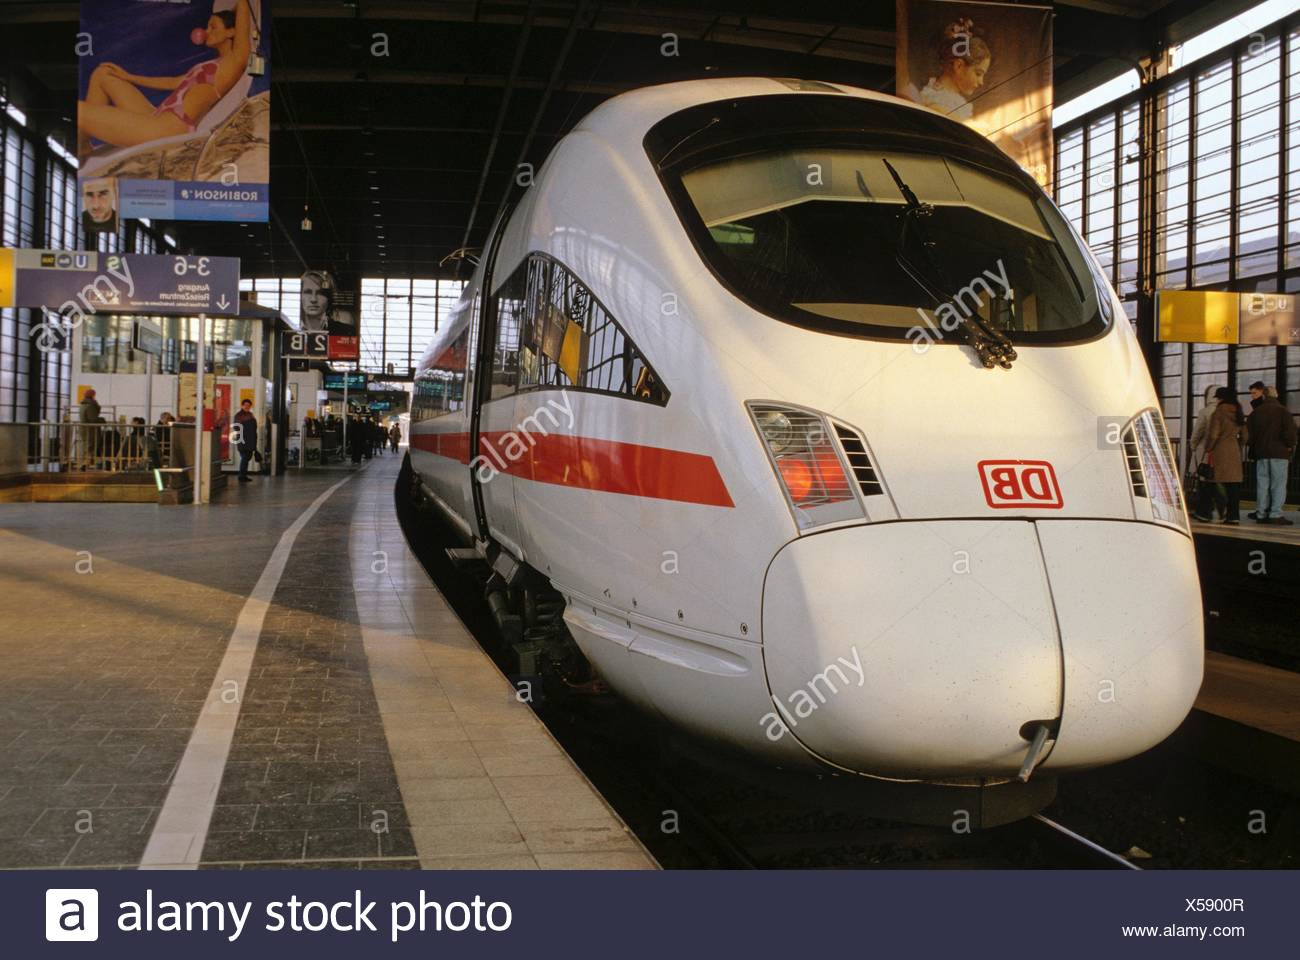 Ice Remote Express To Stop At Bahnhof Zoo Berlin Stock Photo